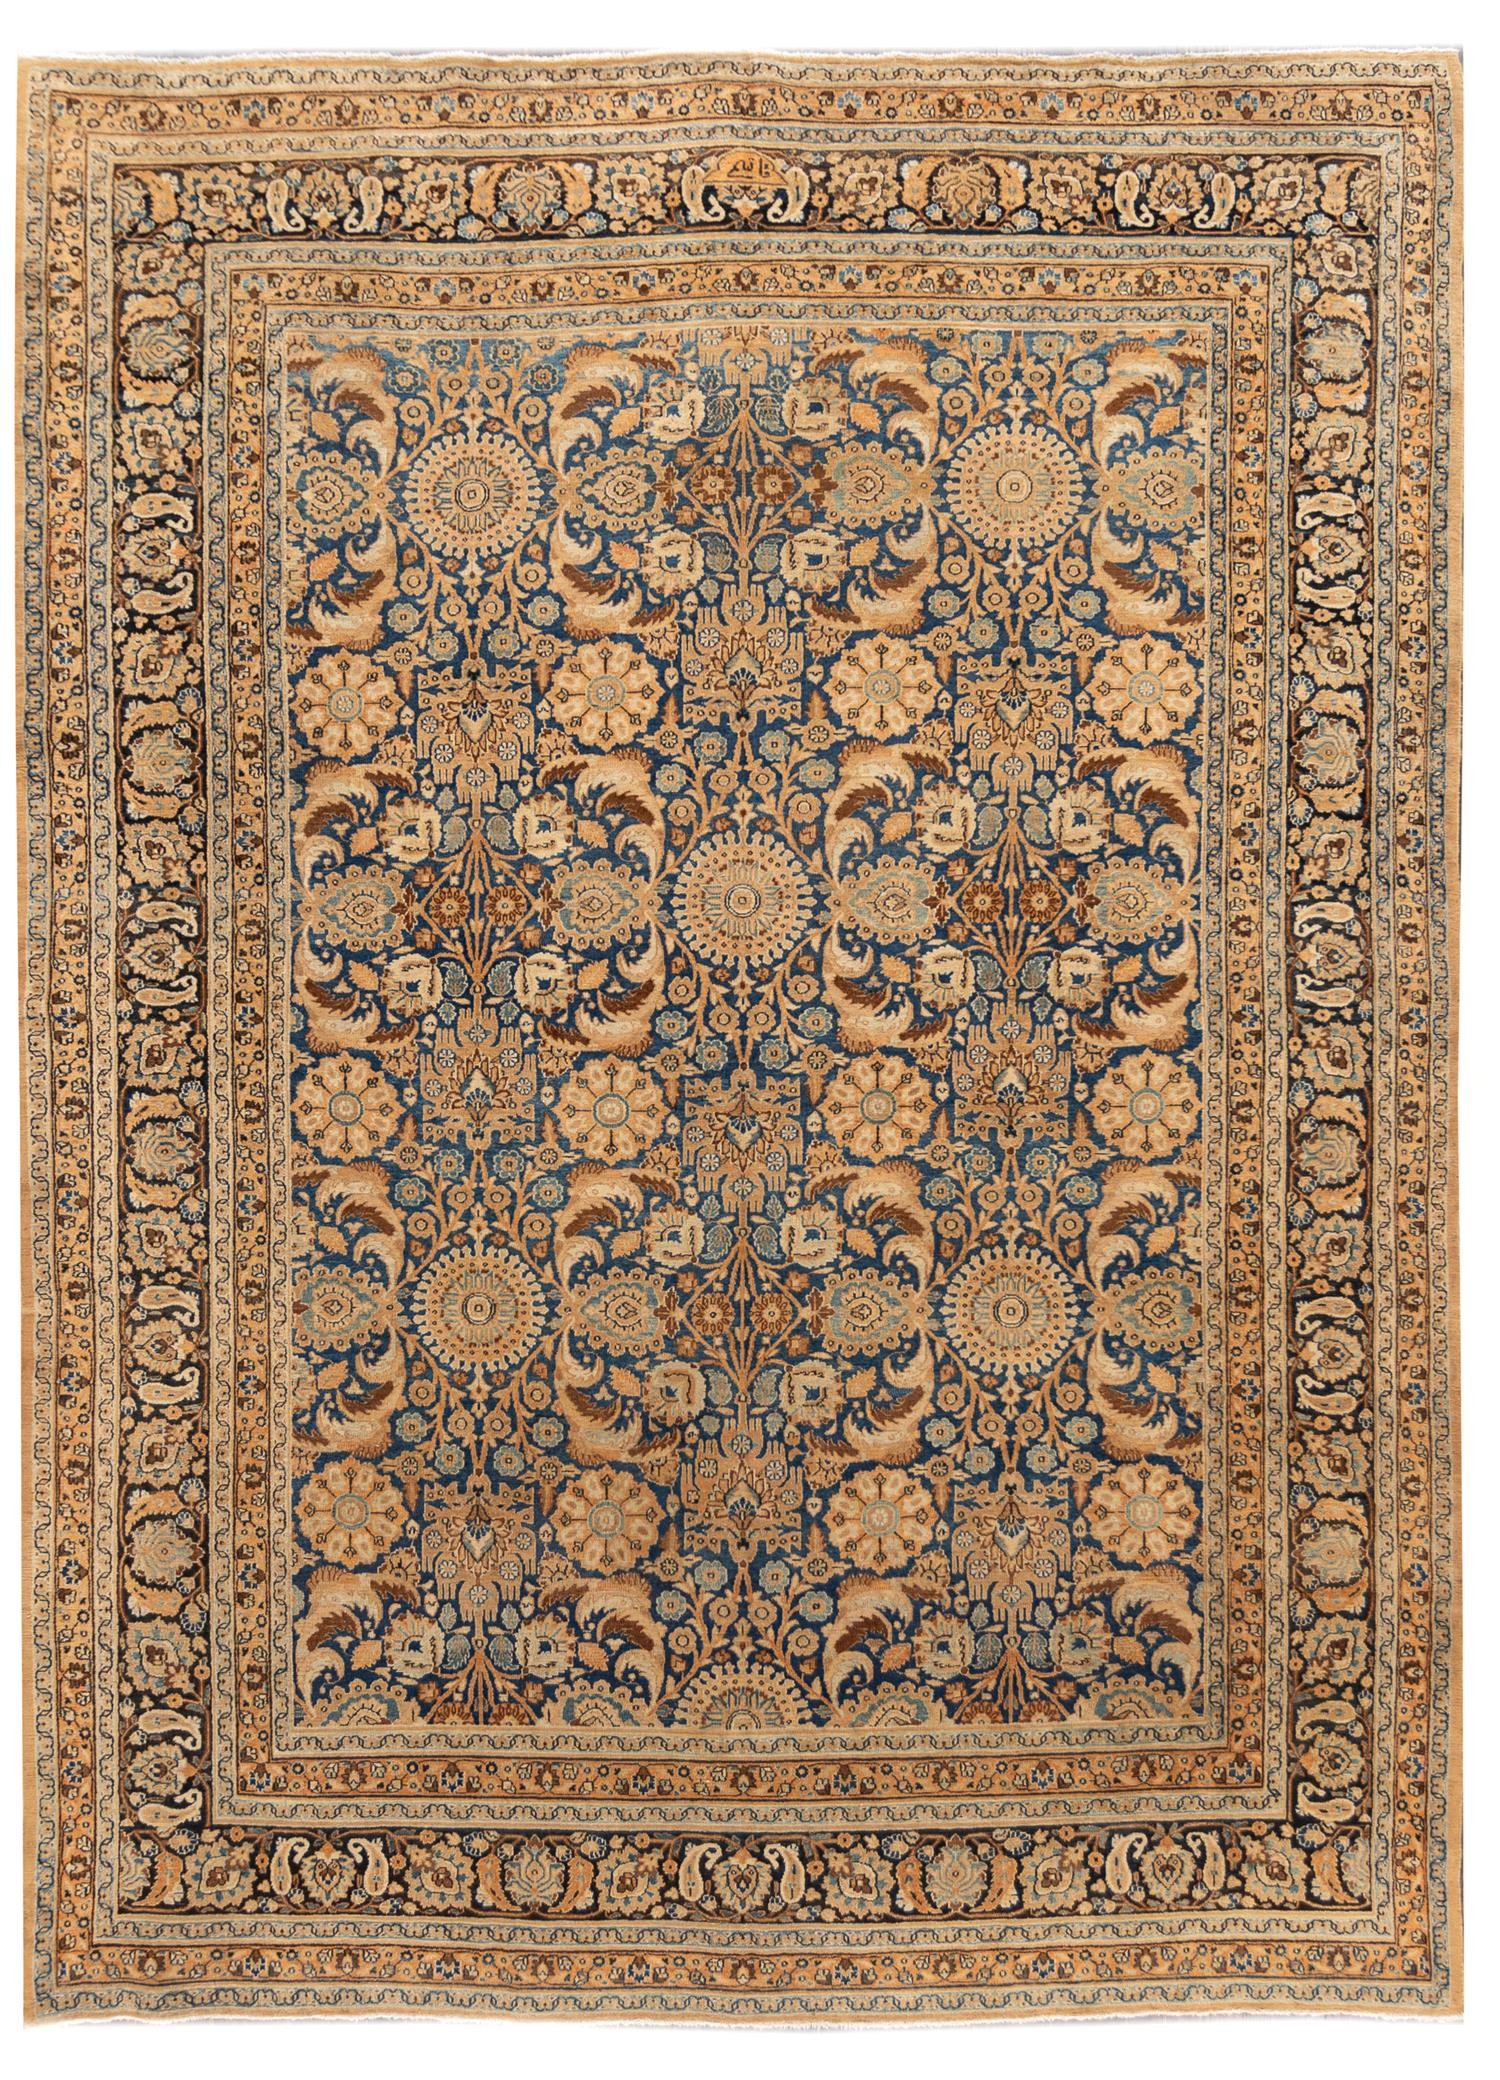 Early 20th Century Antique Tabriz Rug, 10x13